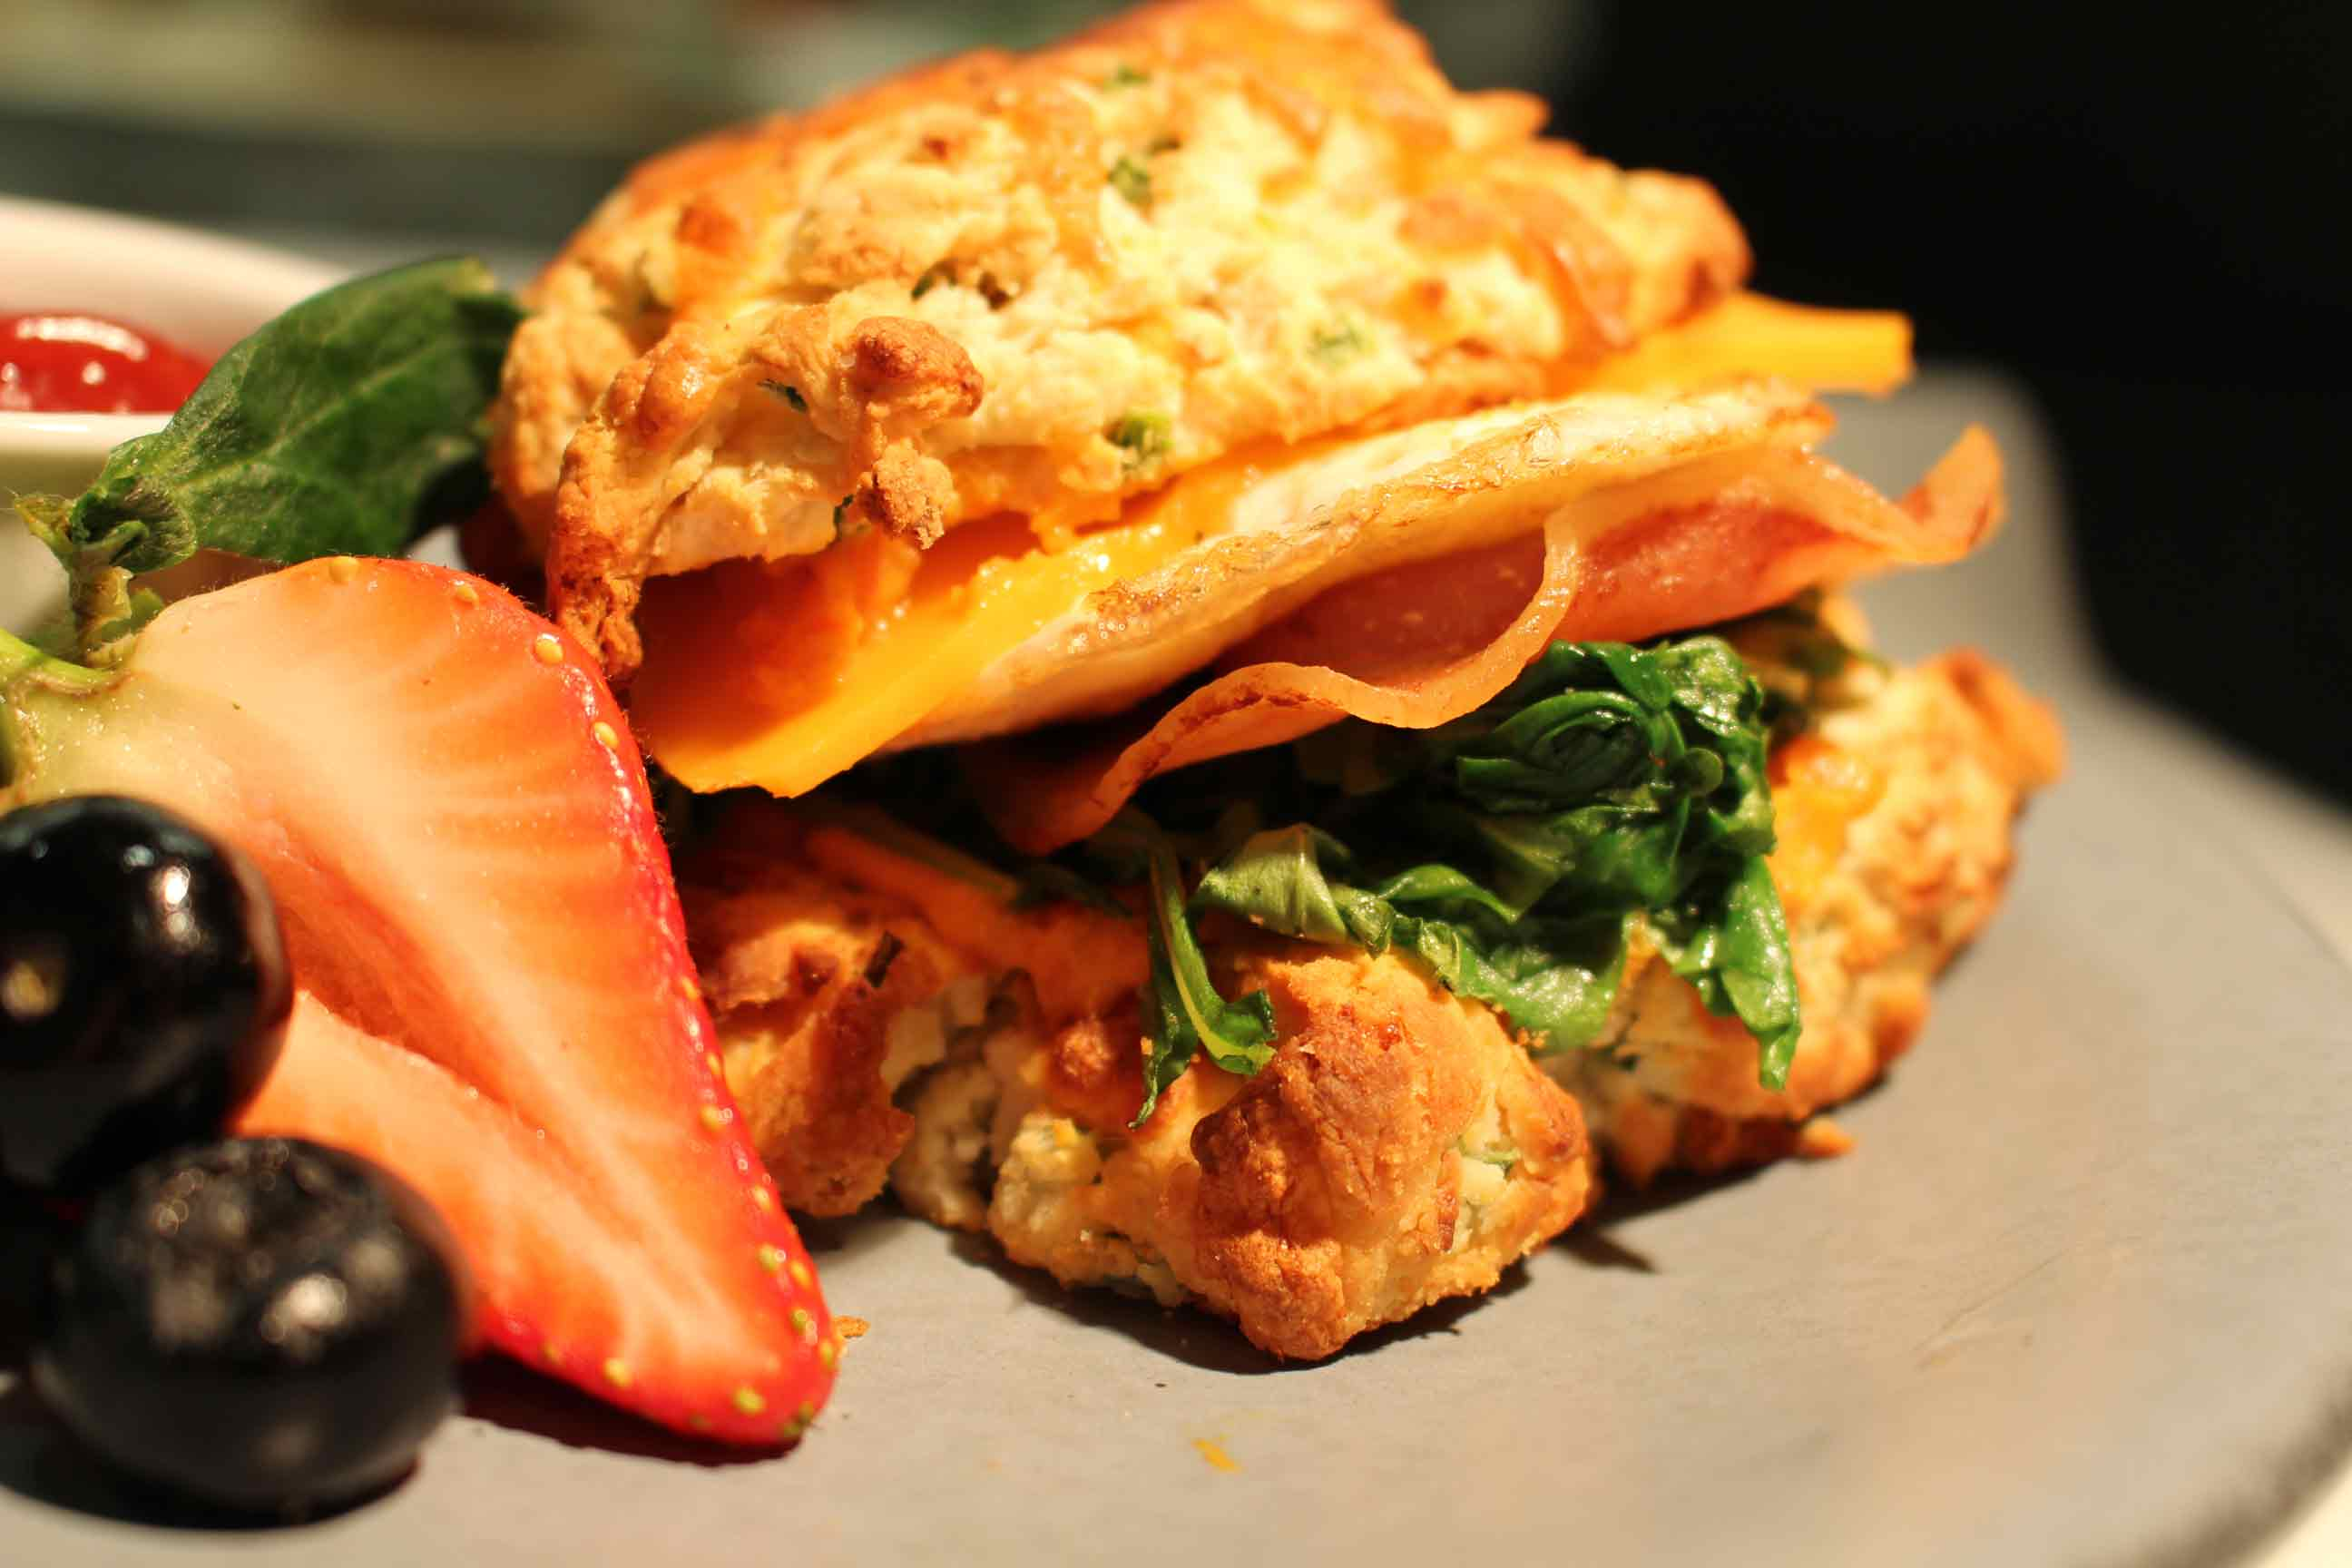 A sandwich made on a cheddar biscuit